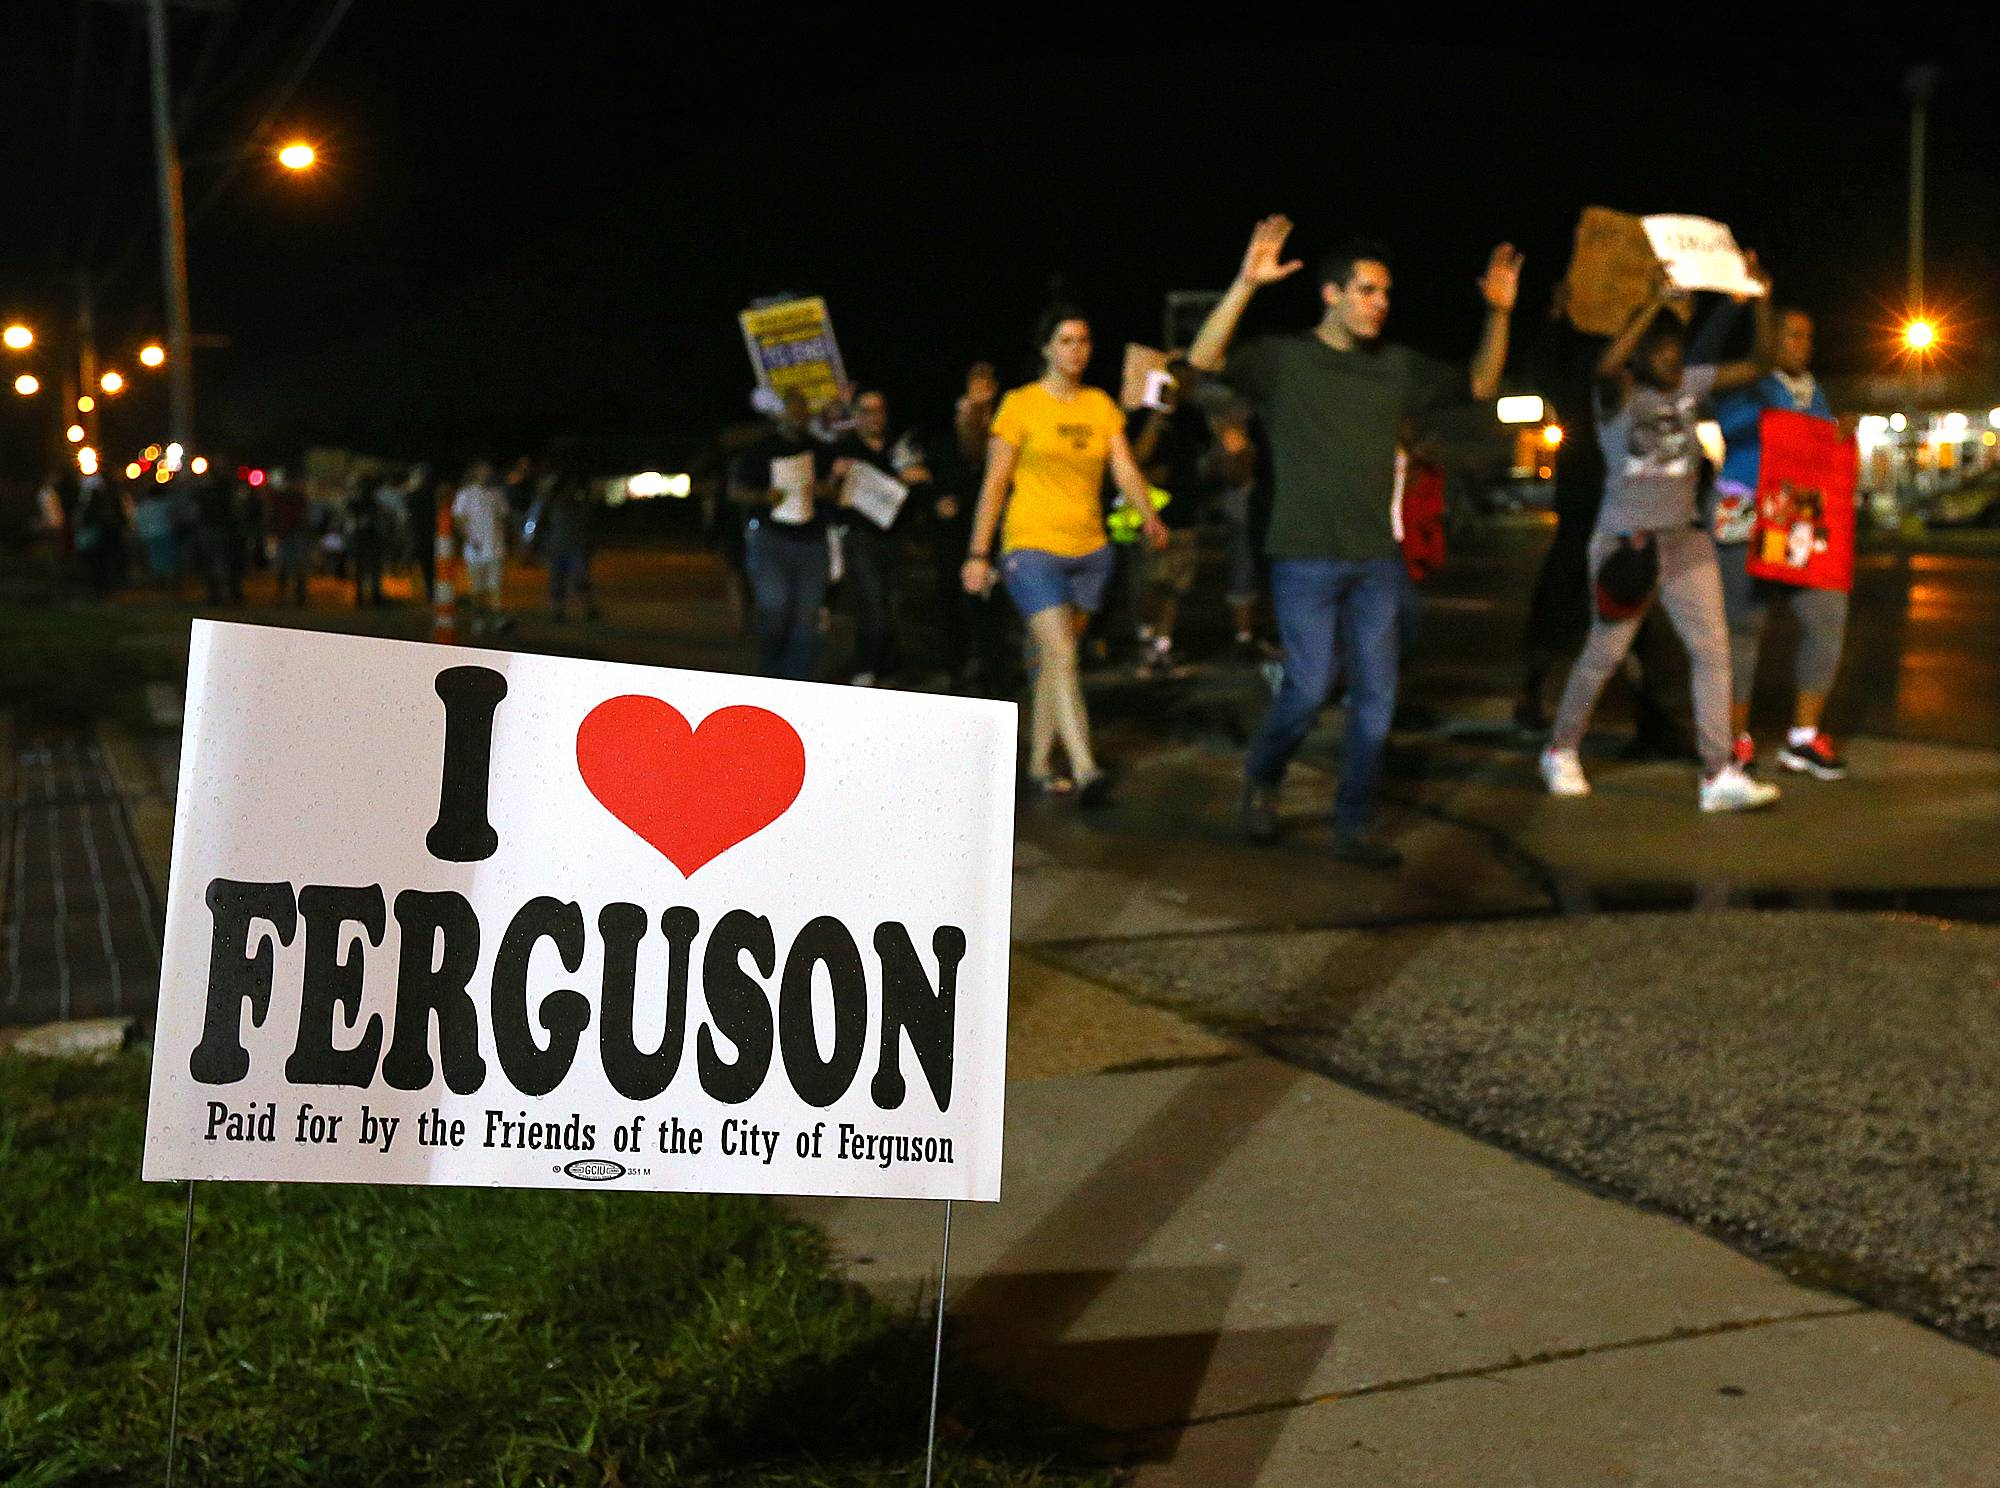 A small group of protesters marches down West Florissant Avenue in Ferguson, Mo. on Wednesday, Aug. 20, 2014. On Aug. 9, 2014, a white police officer fatally shot Michael Brown, an unarmed black 18-year old, in the St. Louis suburb.